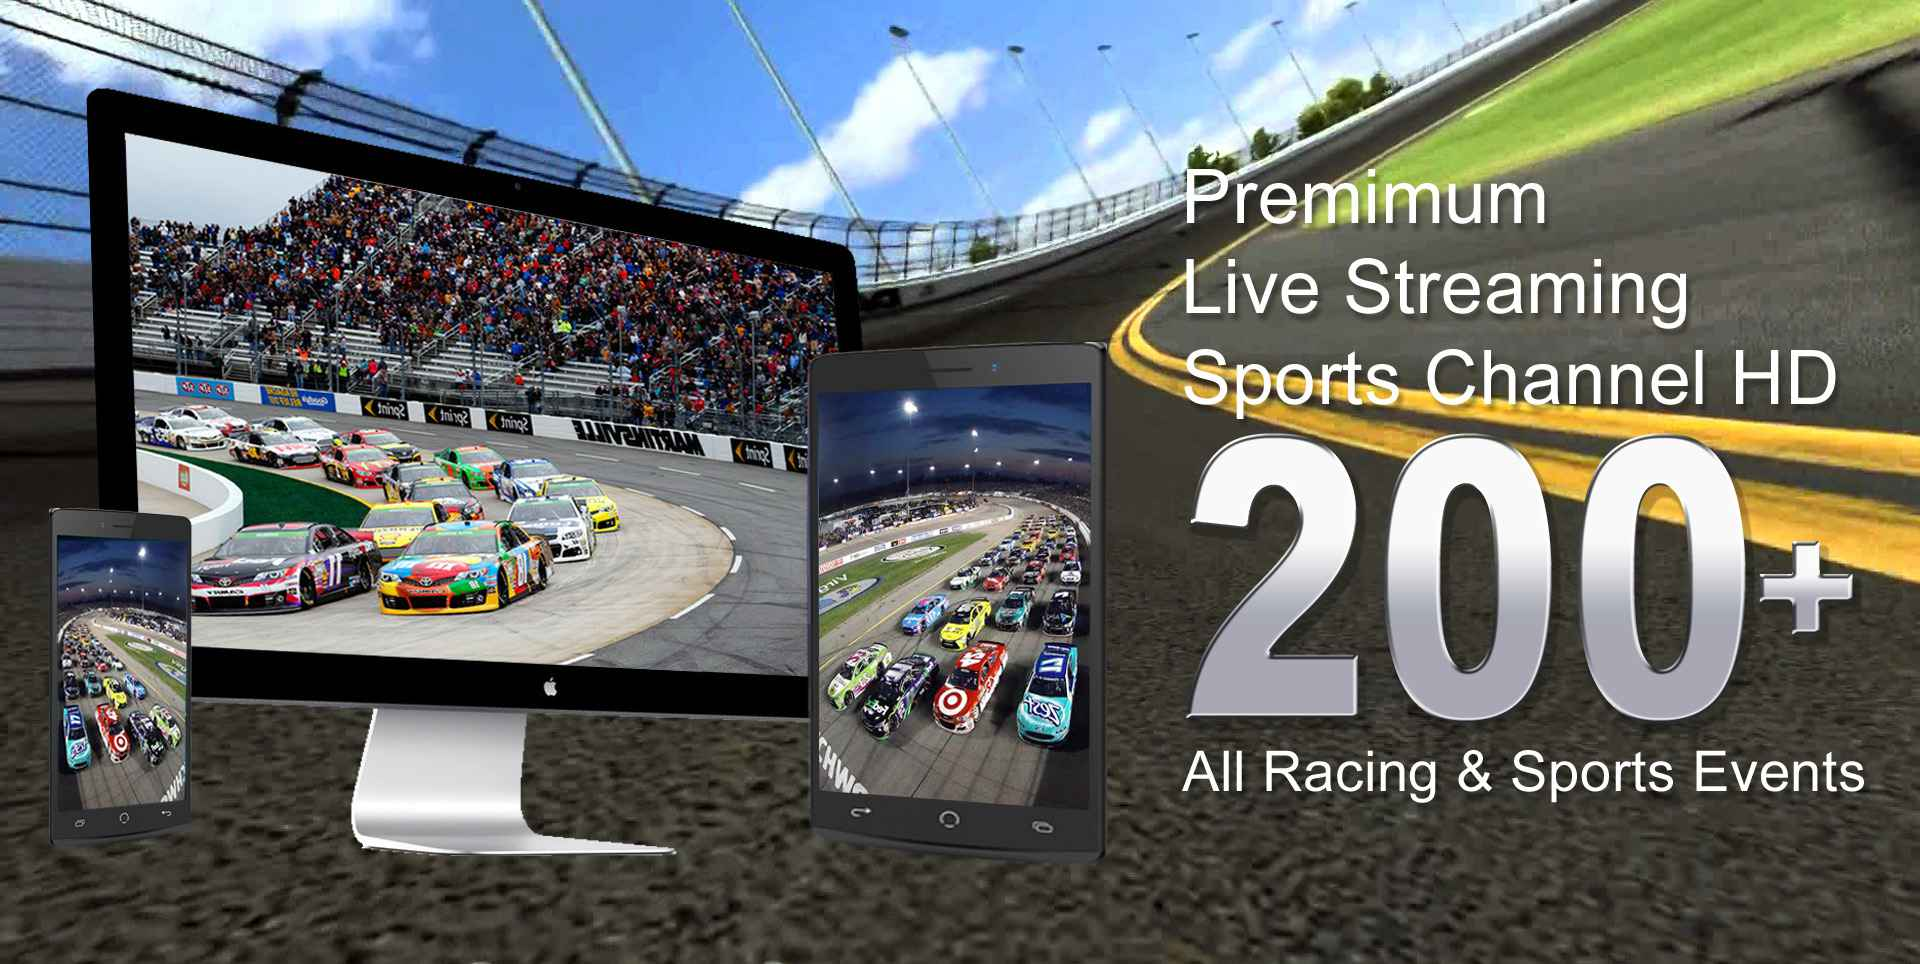 NASCAR Sprint Cup Series at New Hampshire